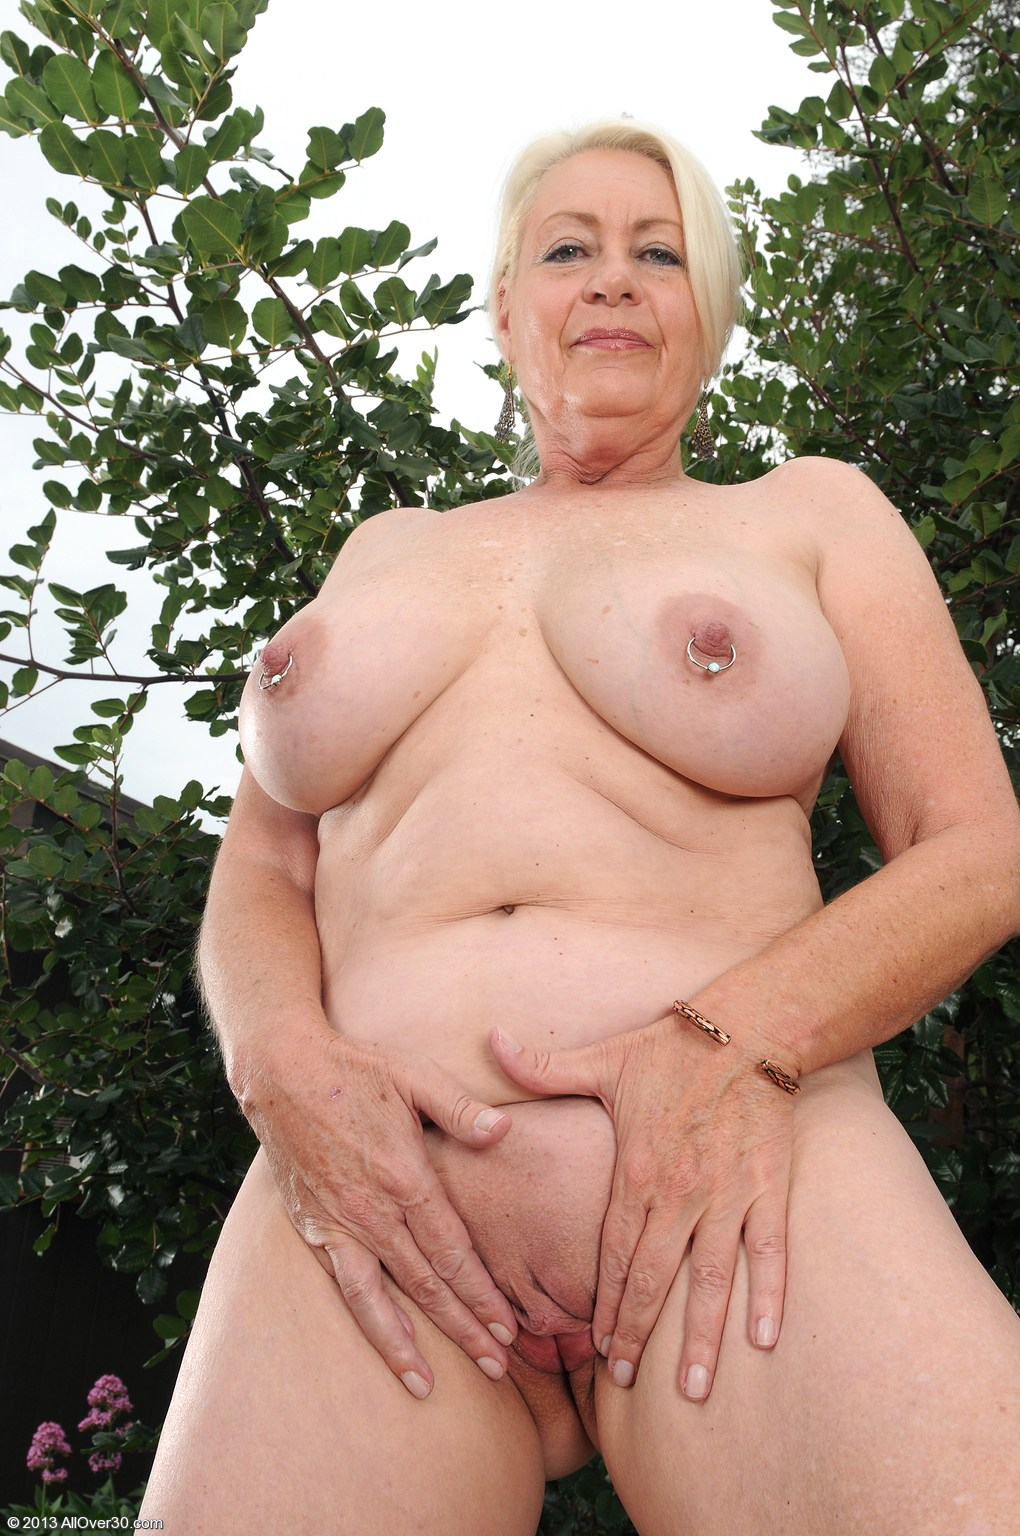 Final, sorry, naked pics of angelique assured